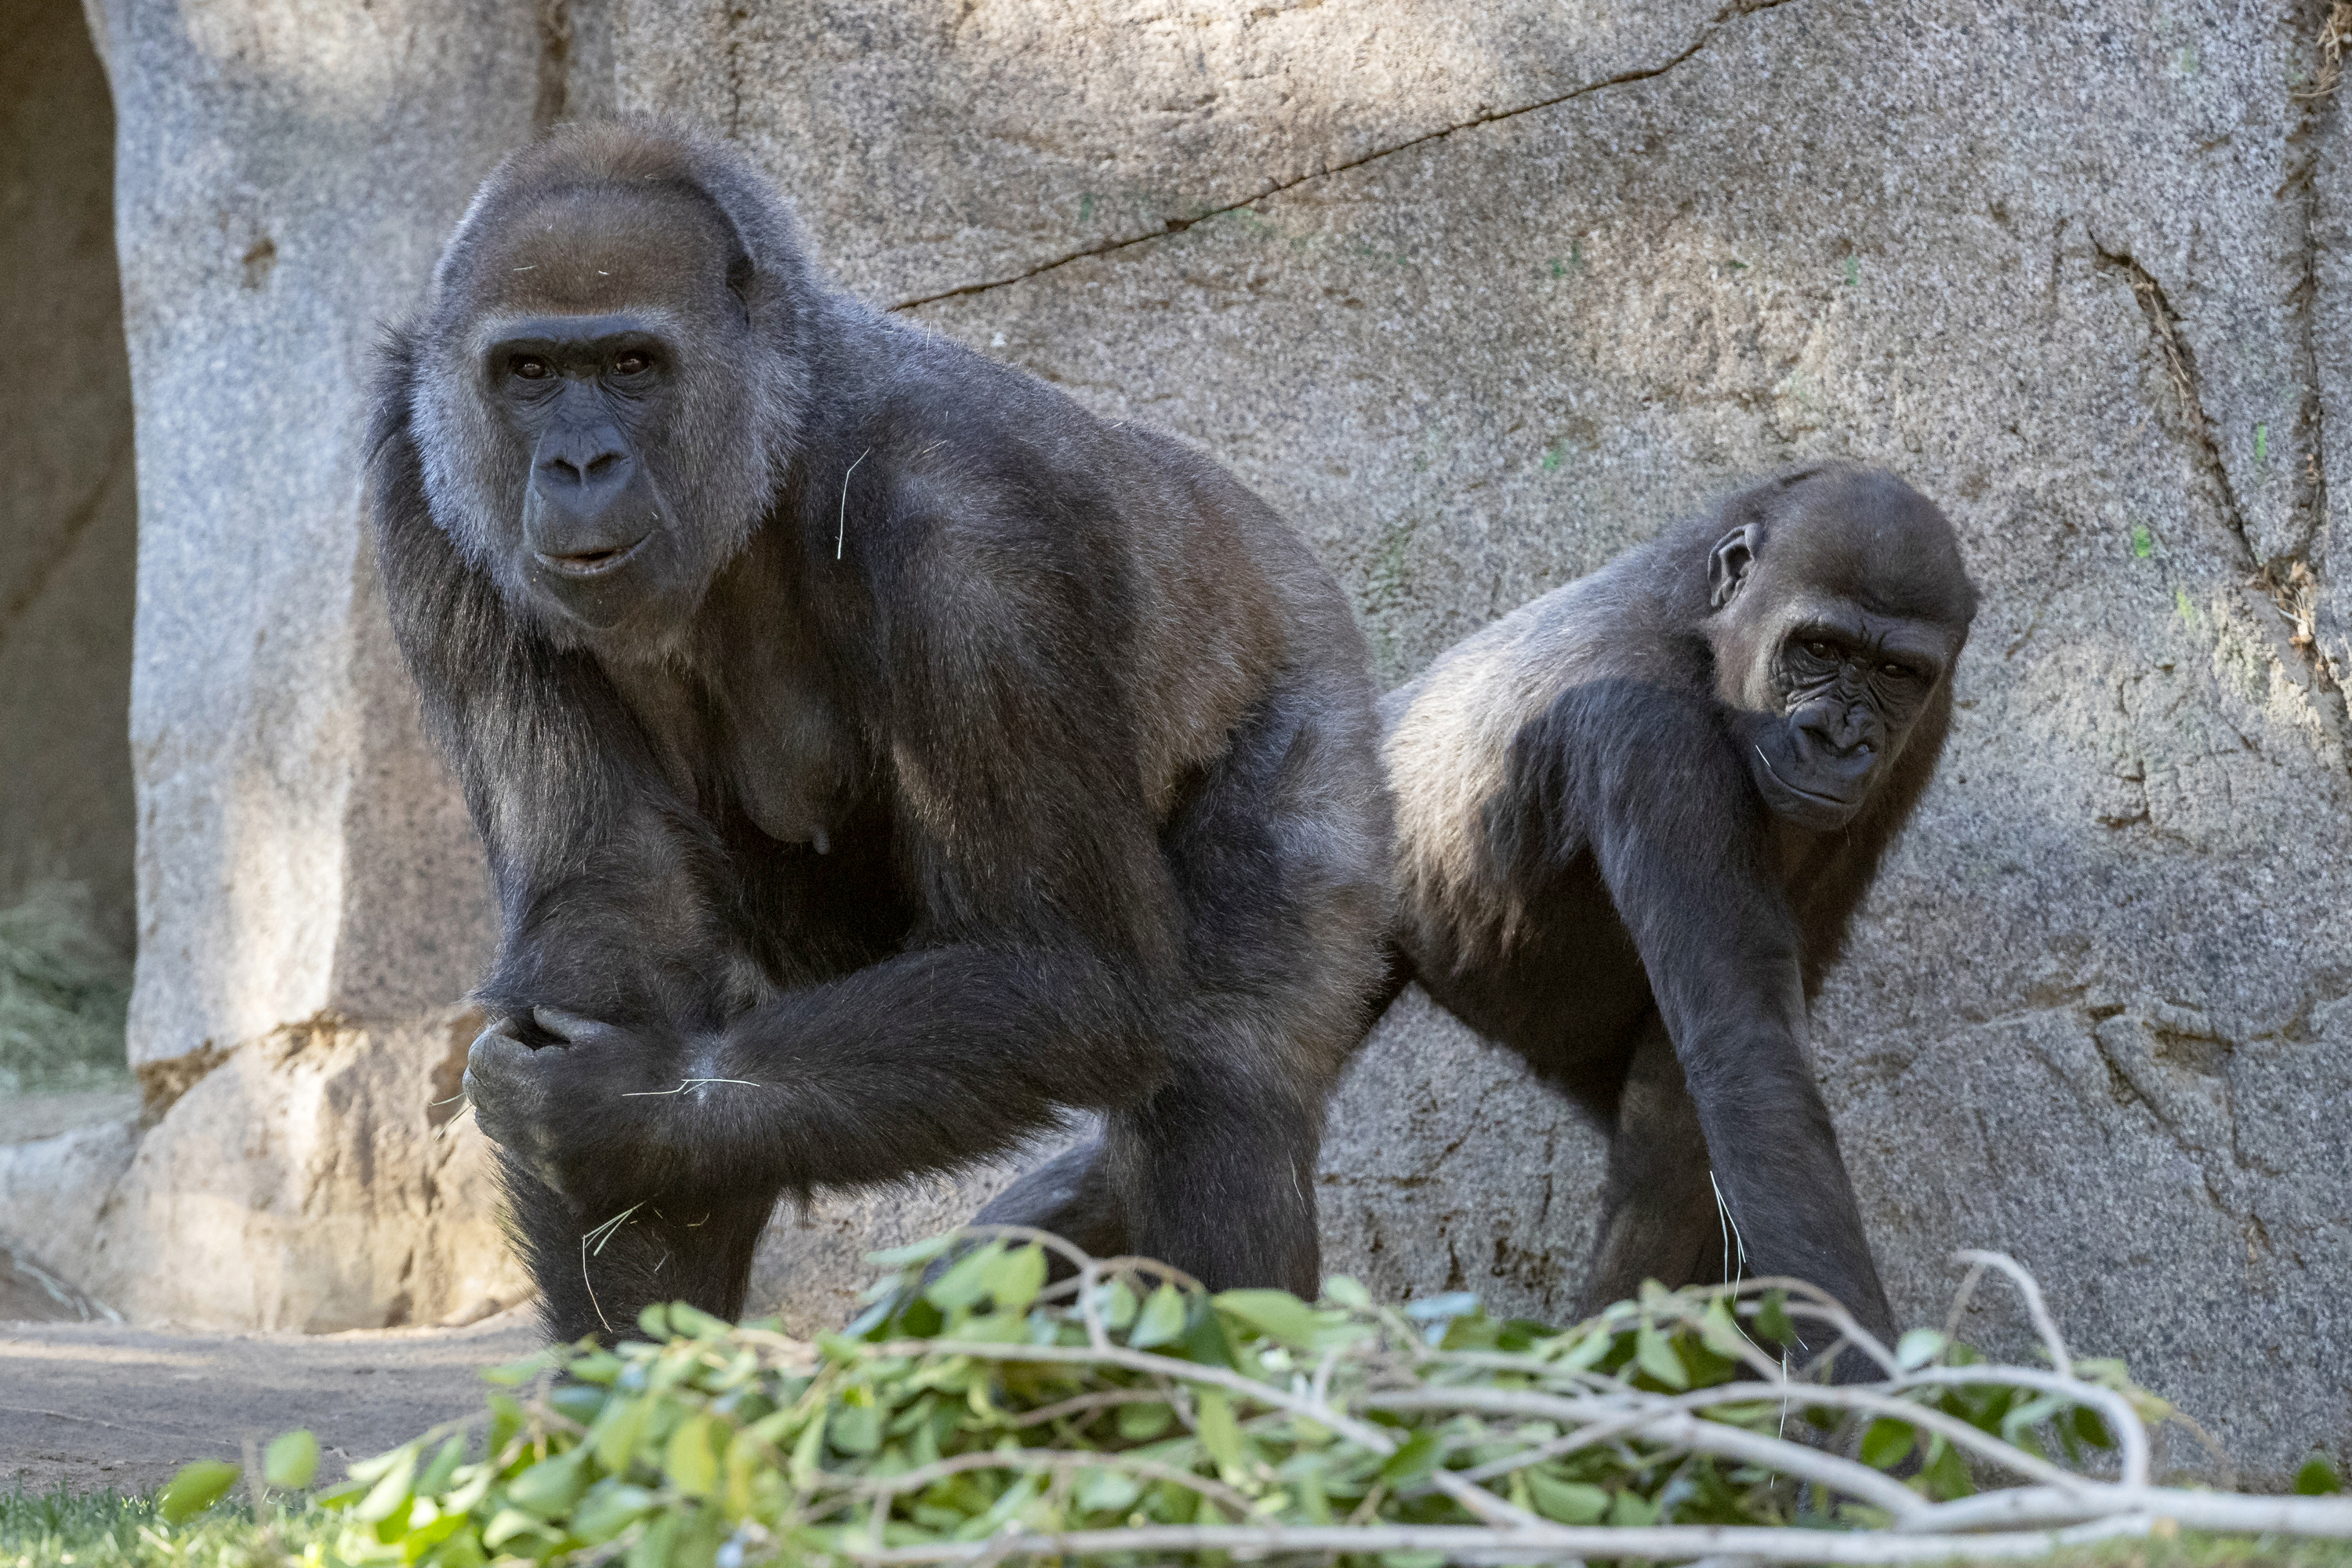 Leslie, a silverback gorilla, left, and a gorilla named Imani are seen in their enclosure at the San Diego Zoo Safari Park in Escondido, California